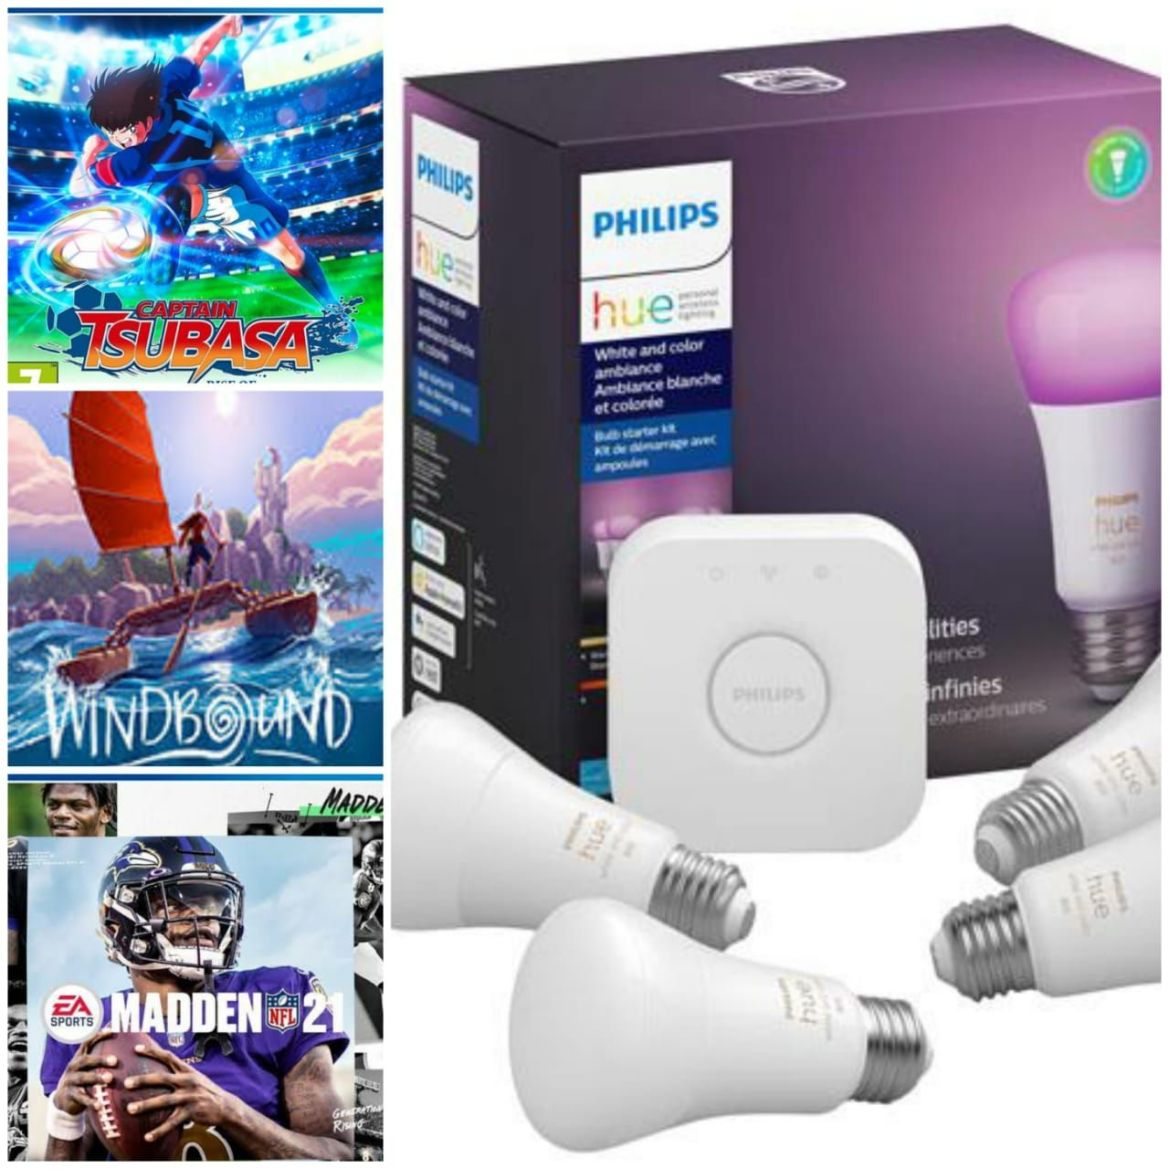 Reseña de Captain Tsubasa: Rise of New Champions, Madden NFL 21, Windbound y Philips Hue